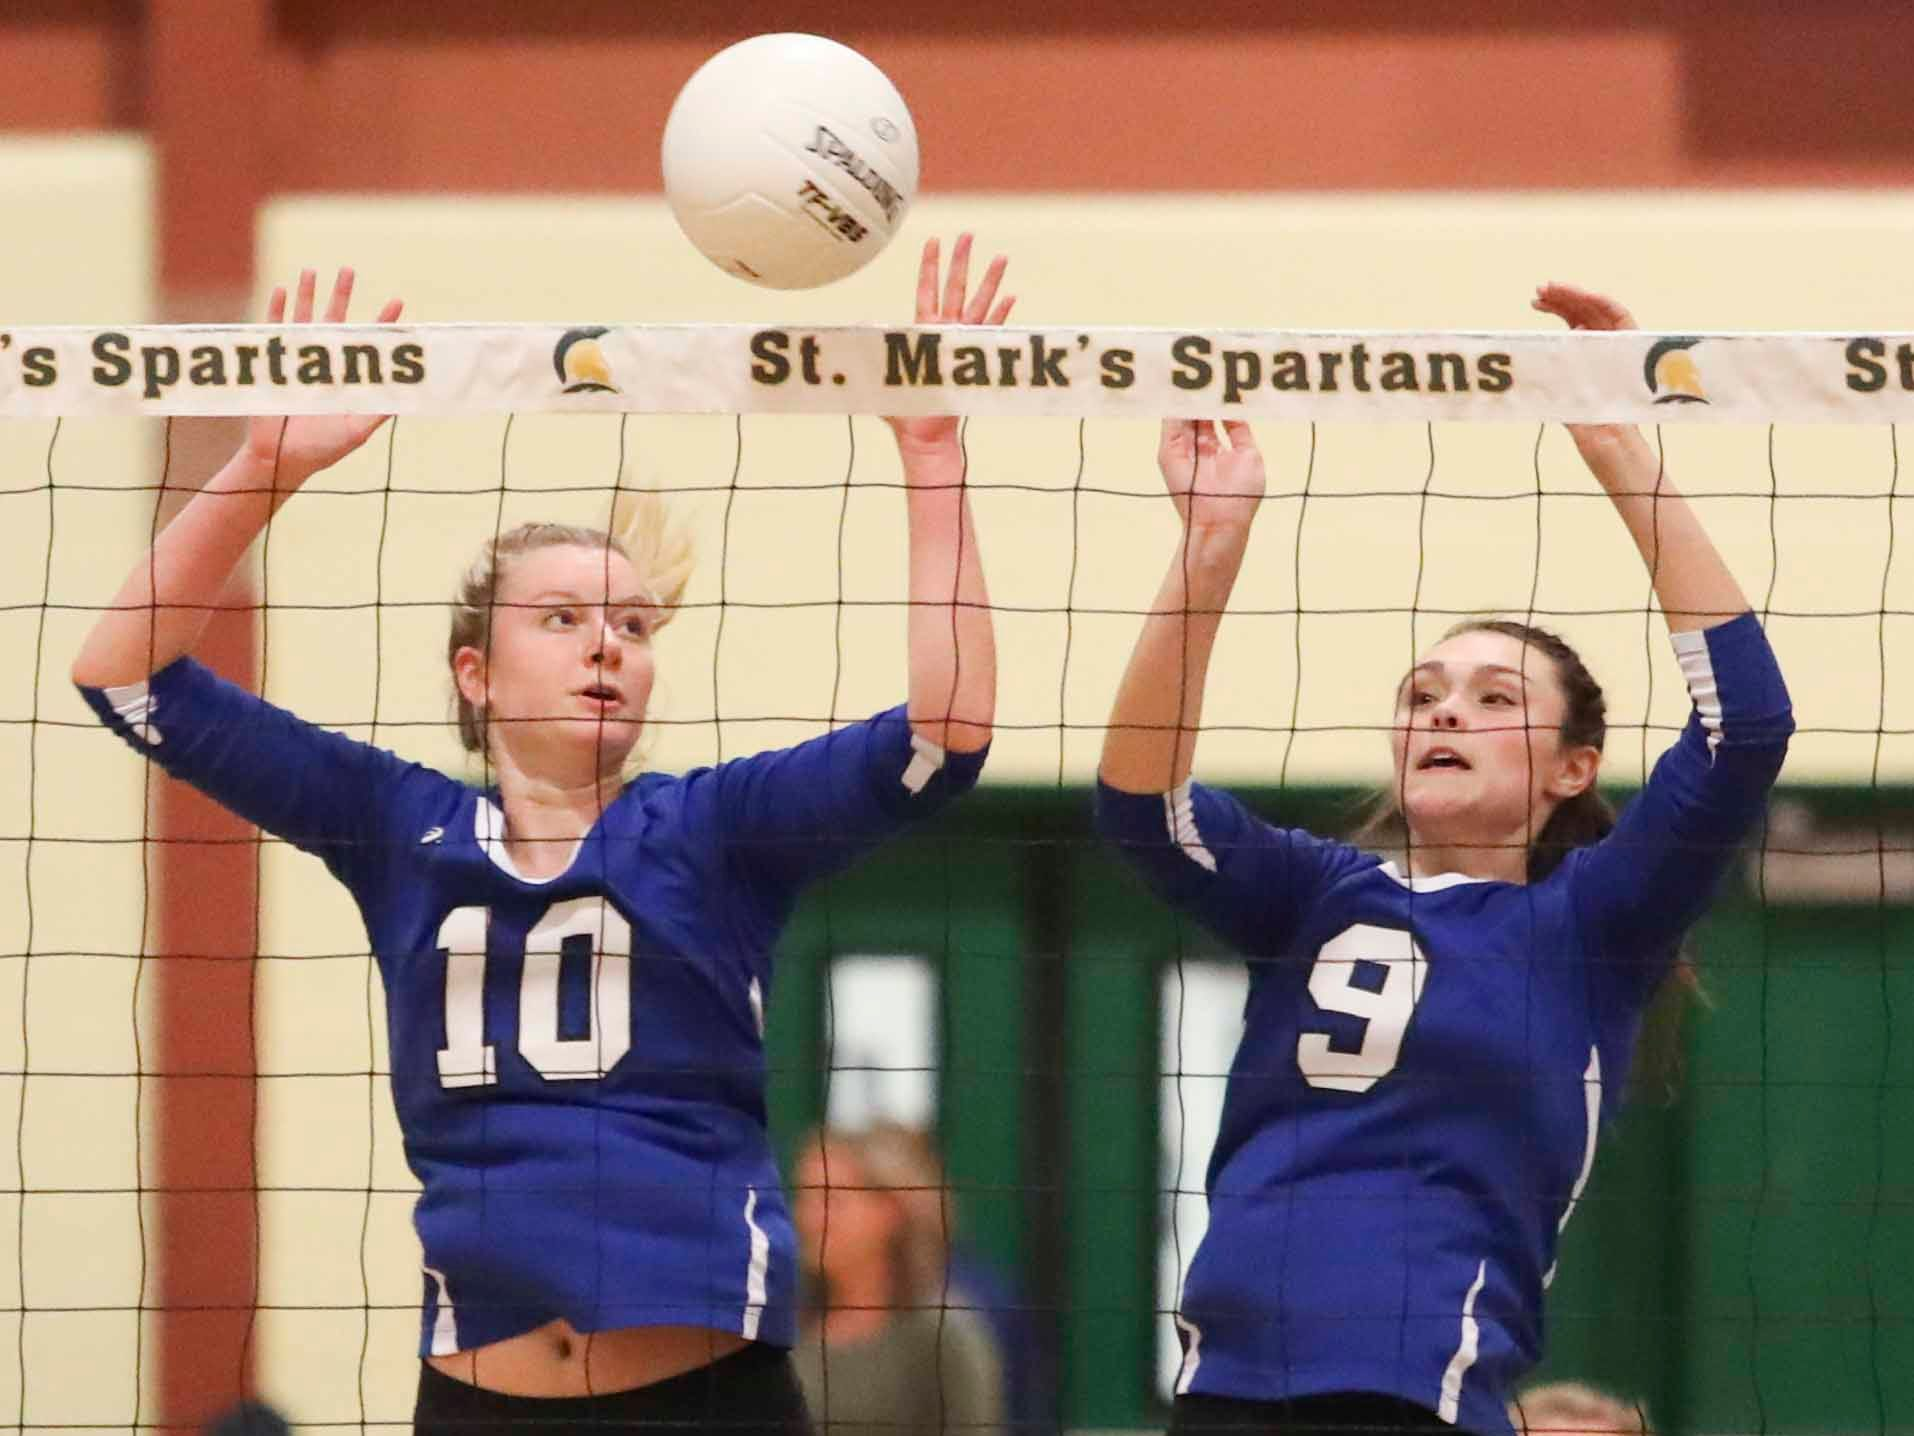 Charter School of Wilmington's Kennie Swanson (left) and Izzy Lugar defend as the Force advances Monday's final in the DIAA state tournament Thursday at St. Mark's High School.